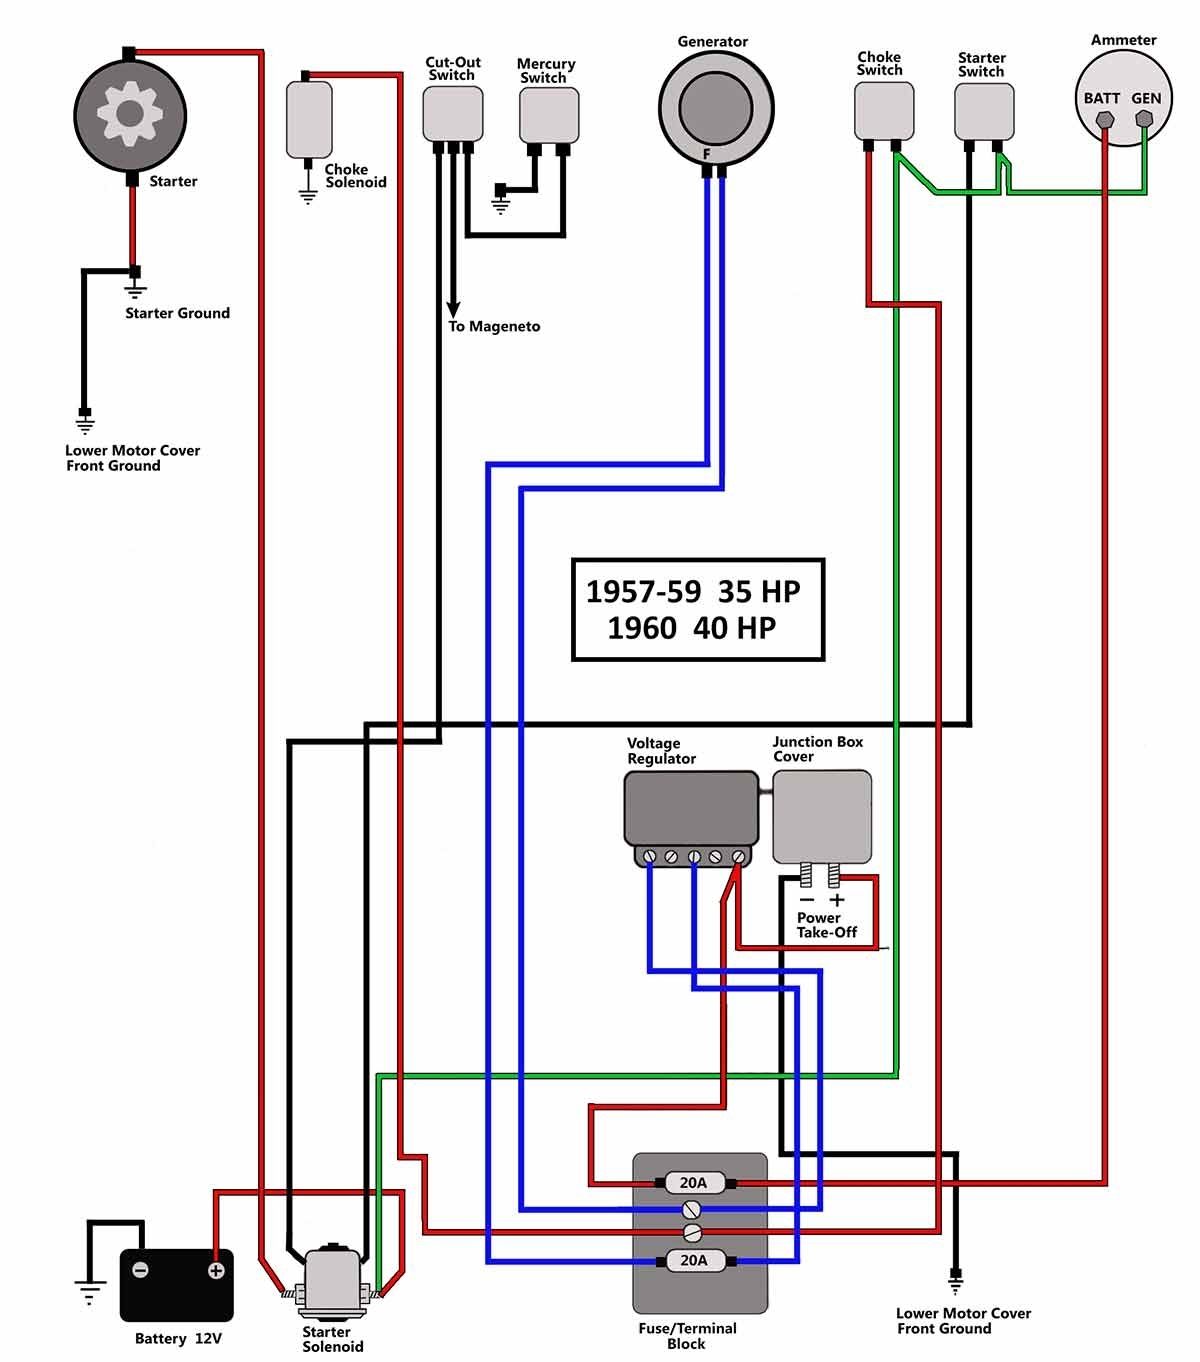 vdo gauges wiring diagrams and boat tach diagram e z go golf cart for boat gauge wiring diagram for tachometer vdo wiring diagram vdo oil pressure gauge wiring \u2022 wiring diagrams Basic Electrical Wiring Diagrams at fashall.co